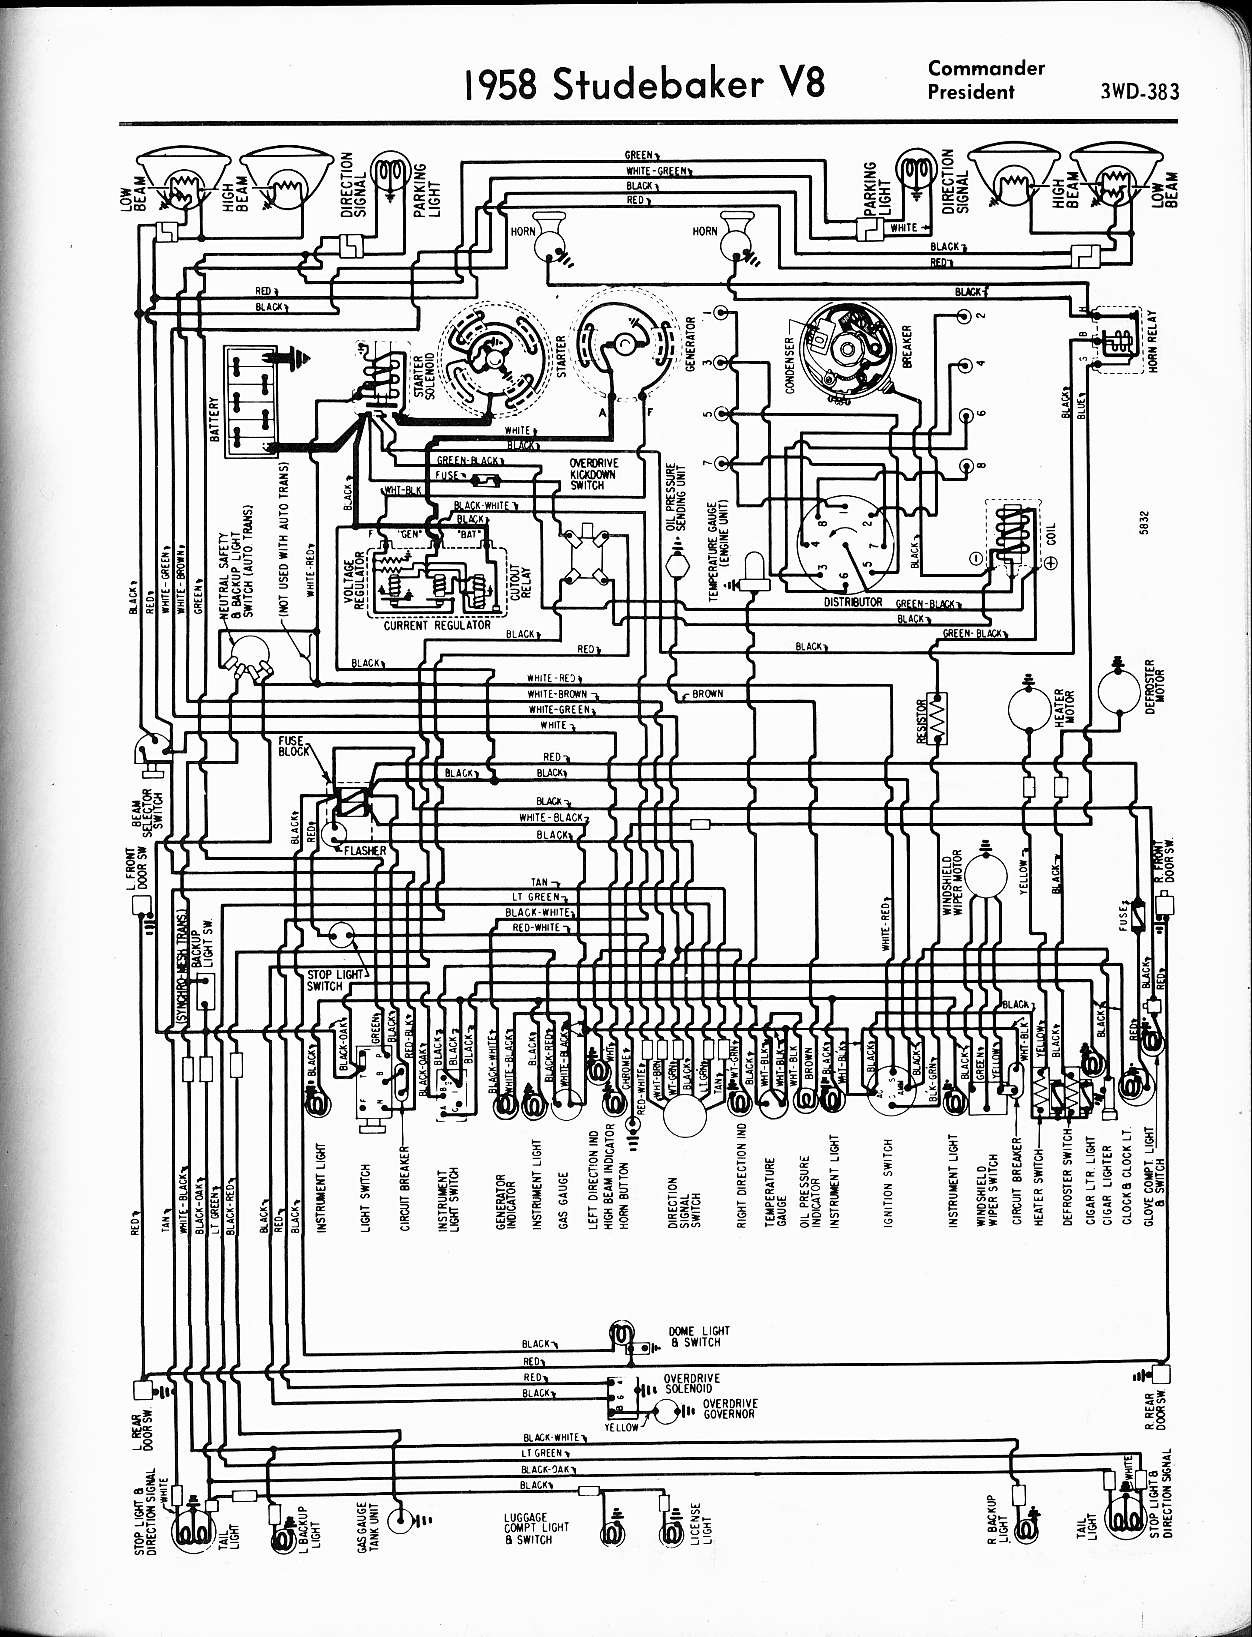 MWire5765 383 studebaker wiring diagrams the old car manual project 1955 studebaker wiring diagram at webbmarketing.co